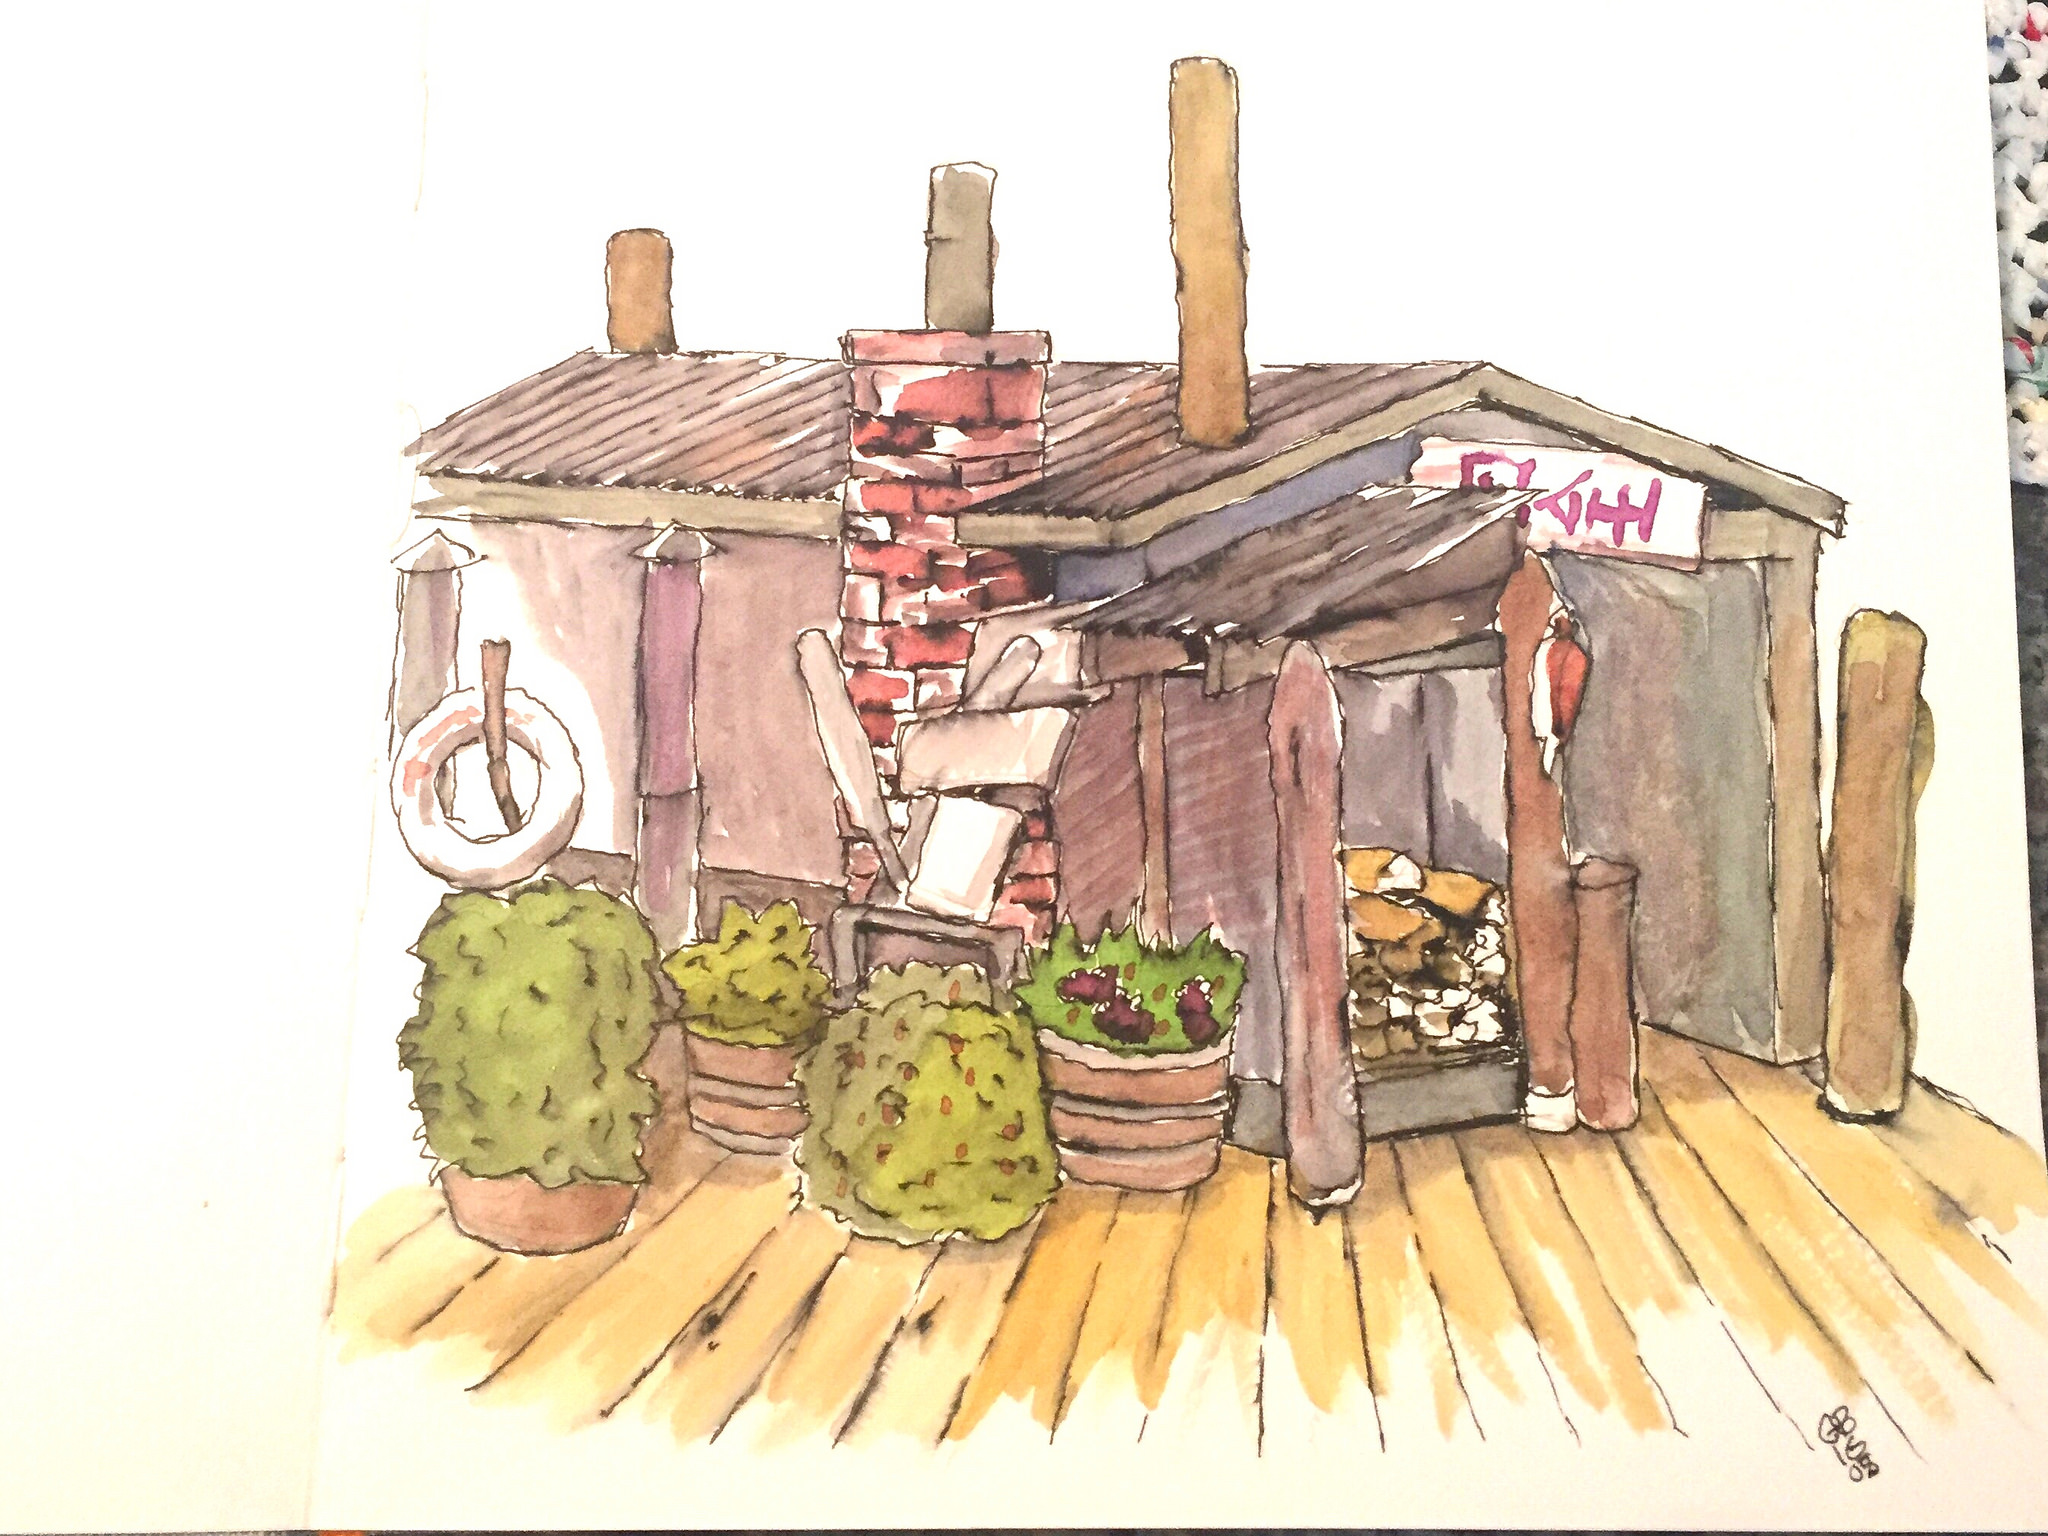 My first attempt. Just getting started with urban sketching and water colors. Made the mistake of using a water soluble fountain pen so my lines have bled.